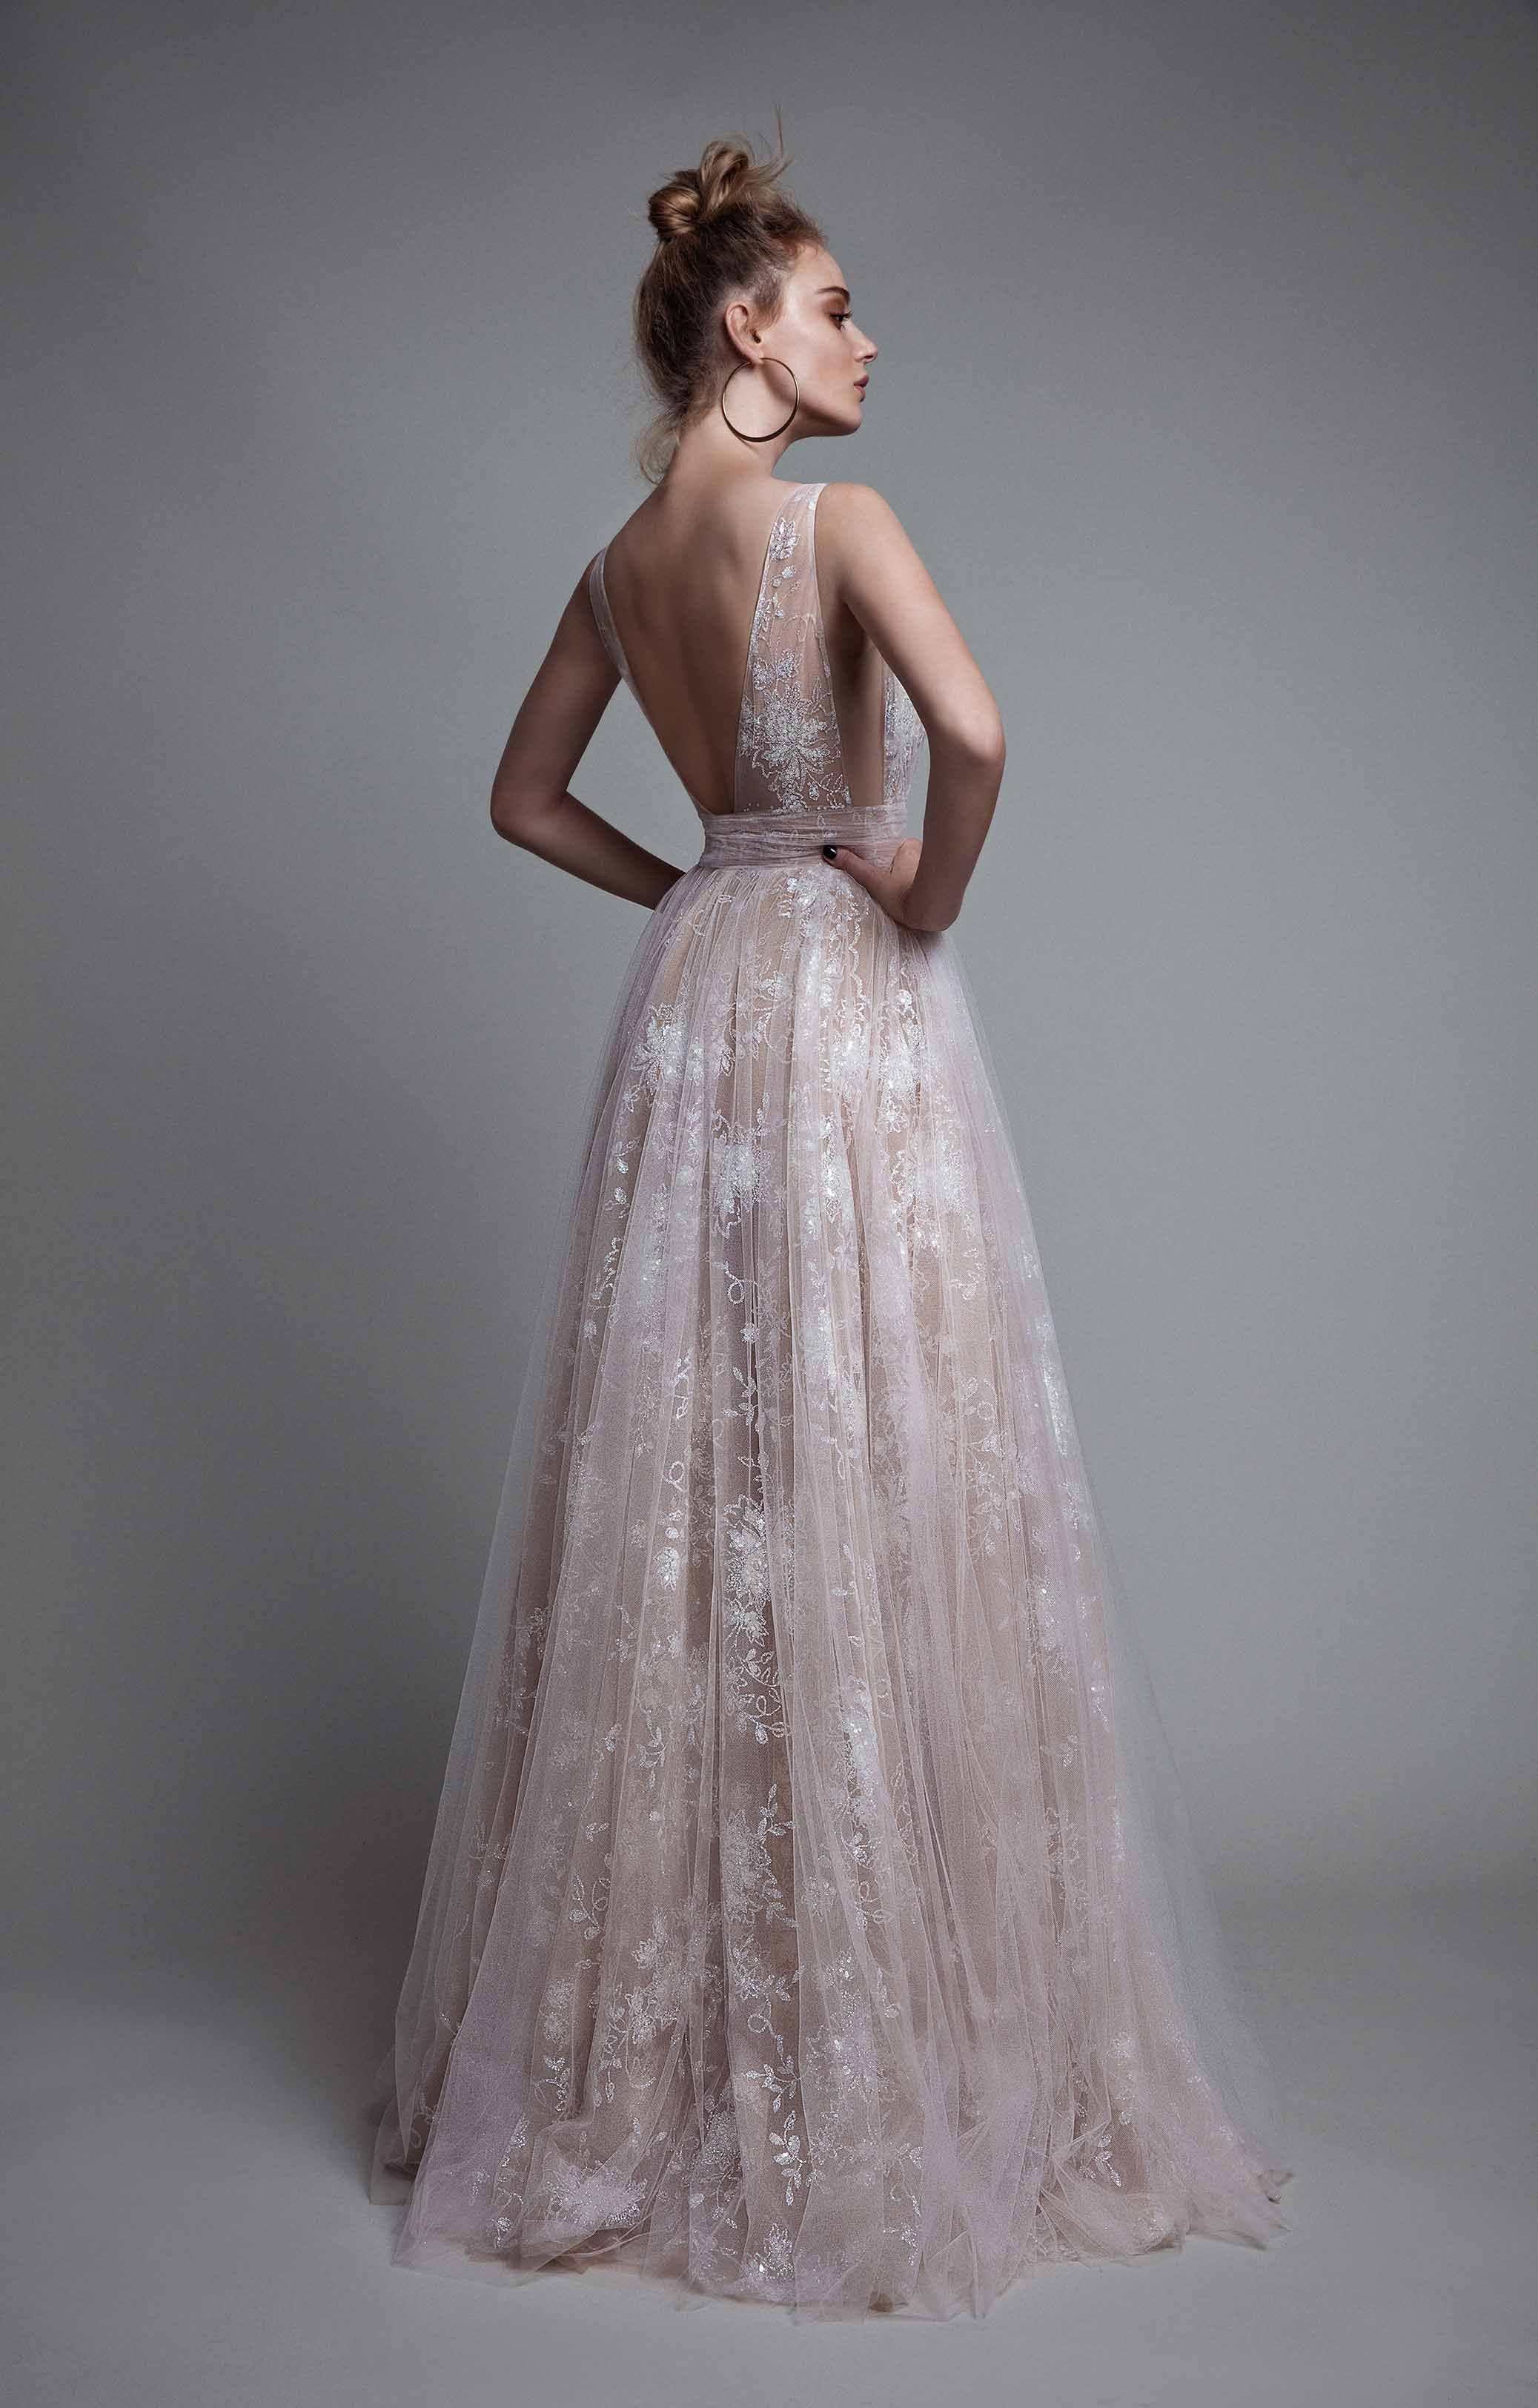 Fw berta gowns pinterest lilacs wedding dress and prom